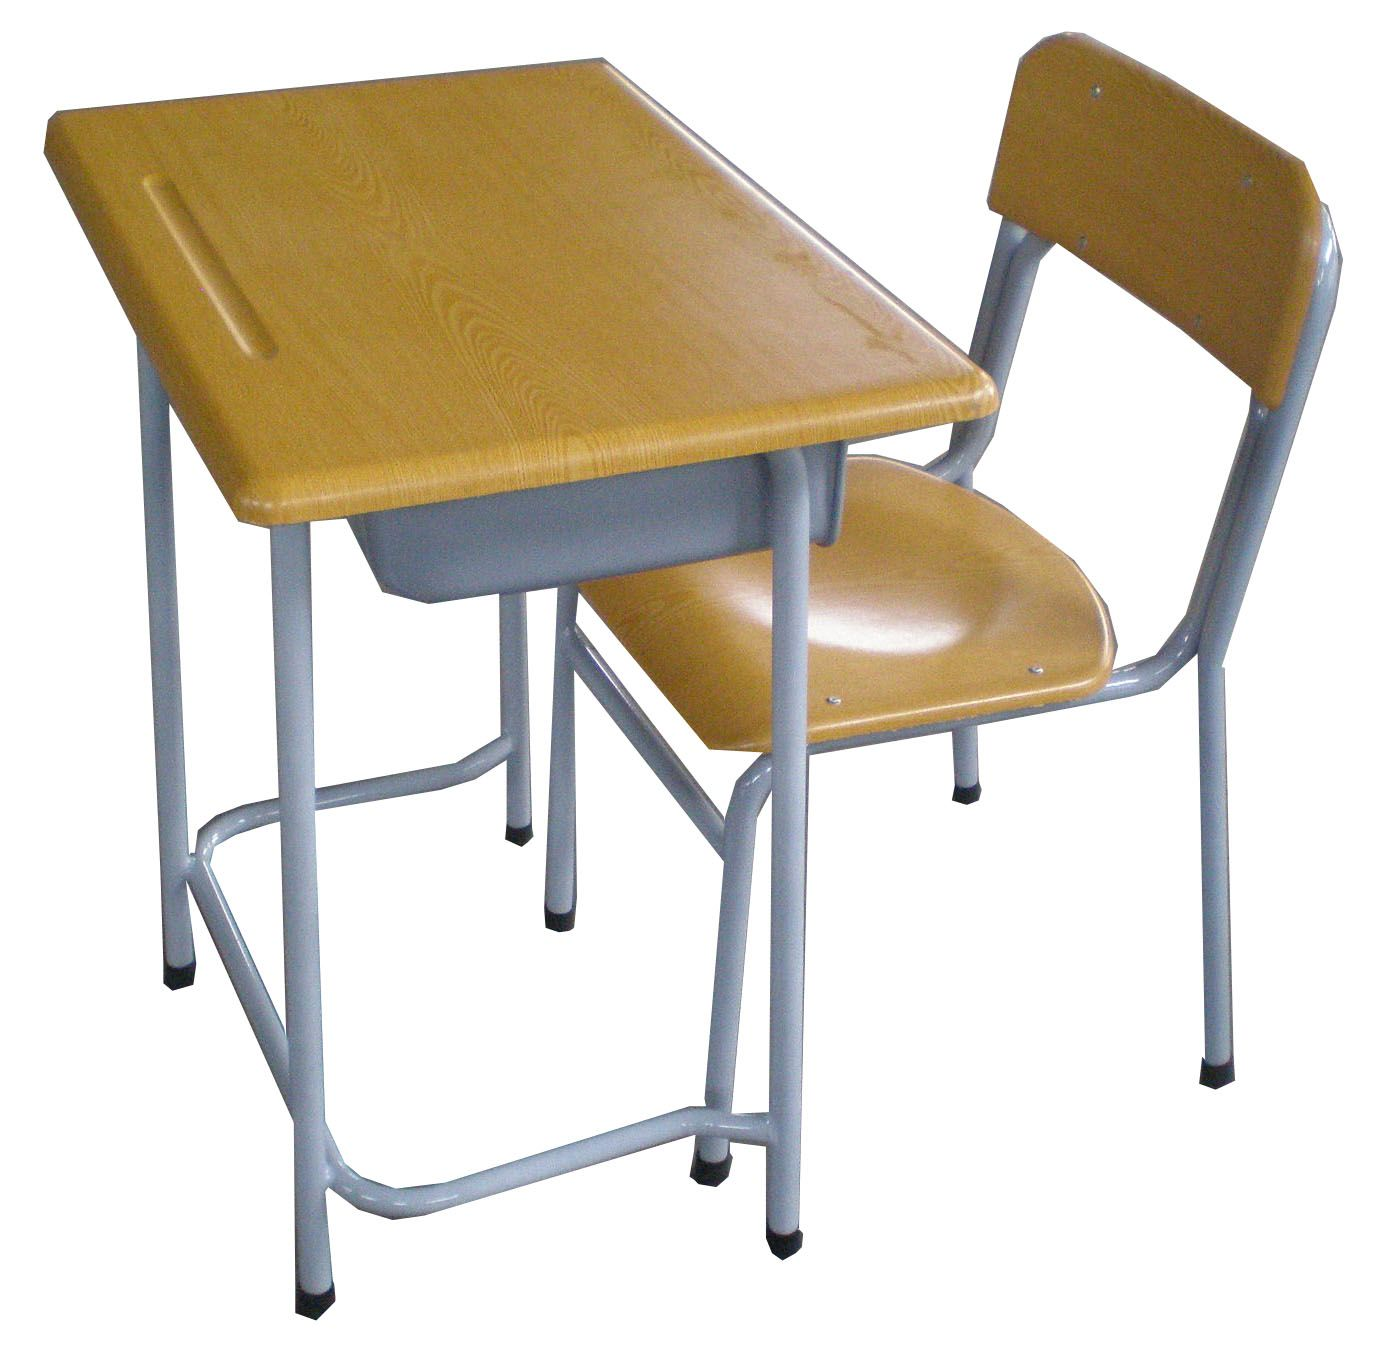 Chairs benches and desks. Bench clipart school bench